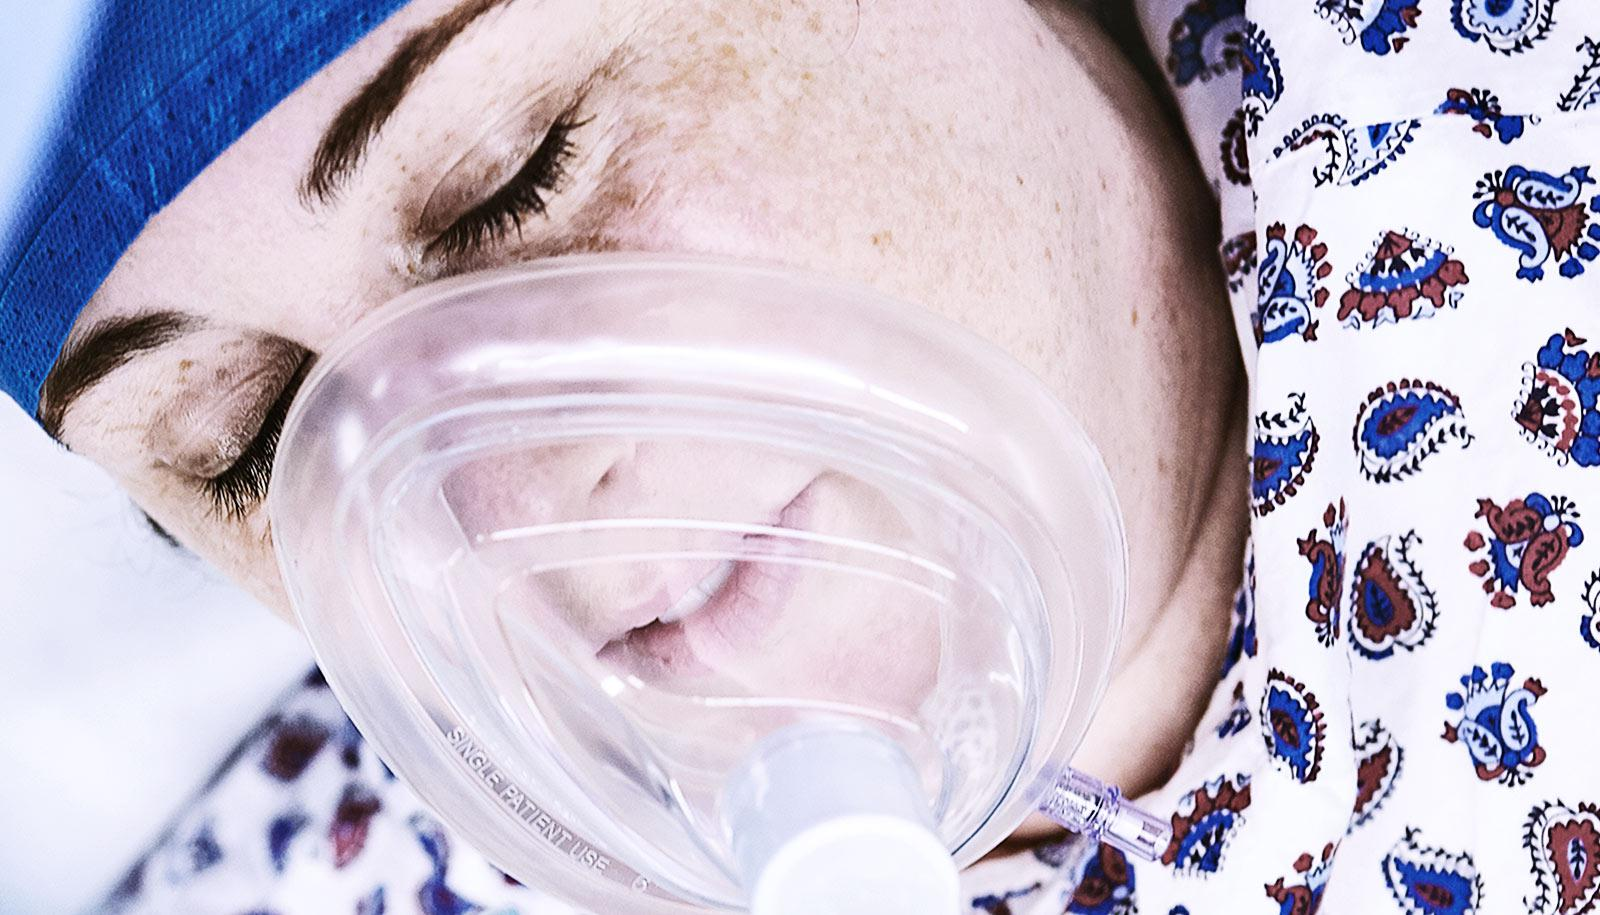 A woman in a hospital gown and with an anesthesia mask on is unconscious.